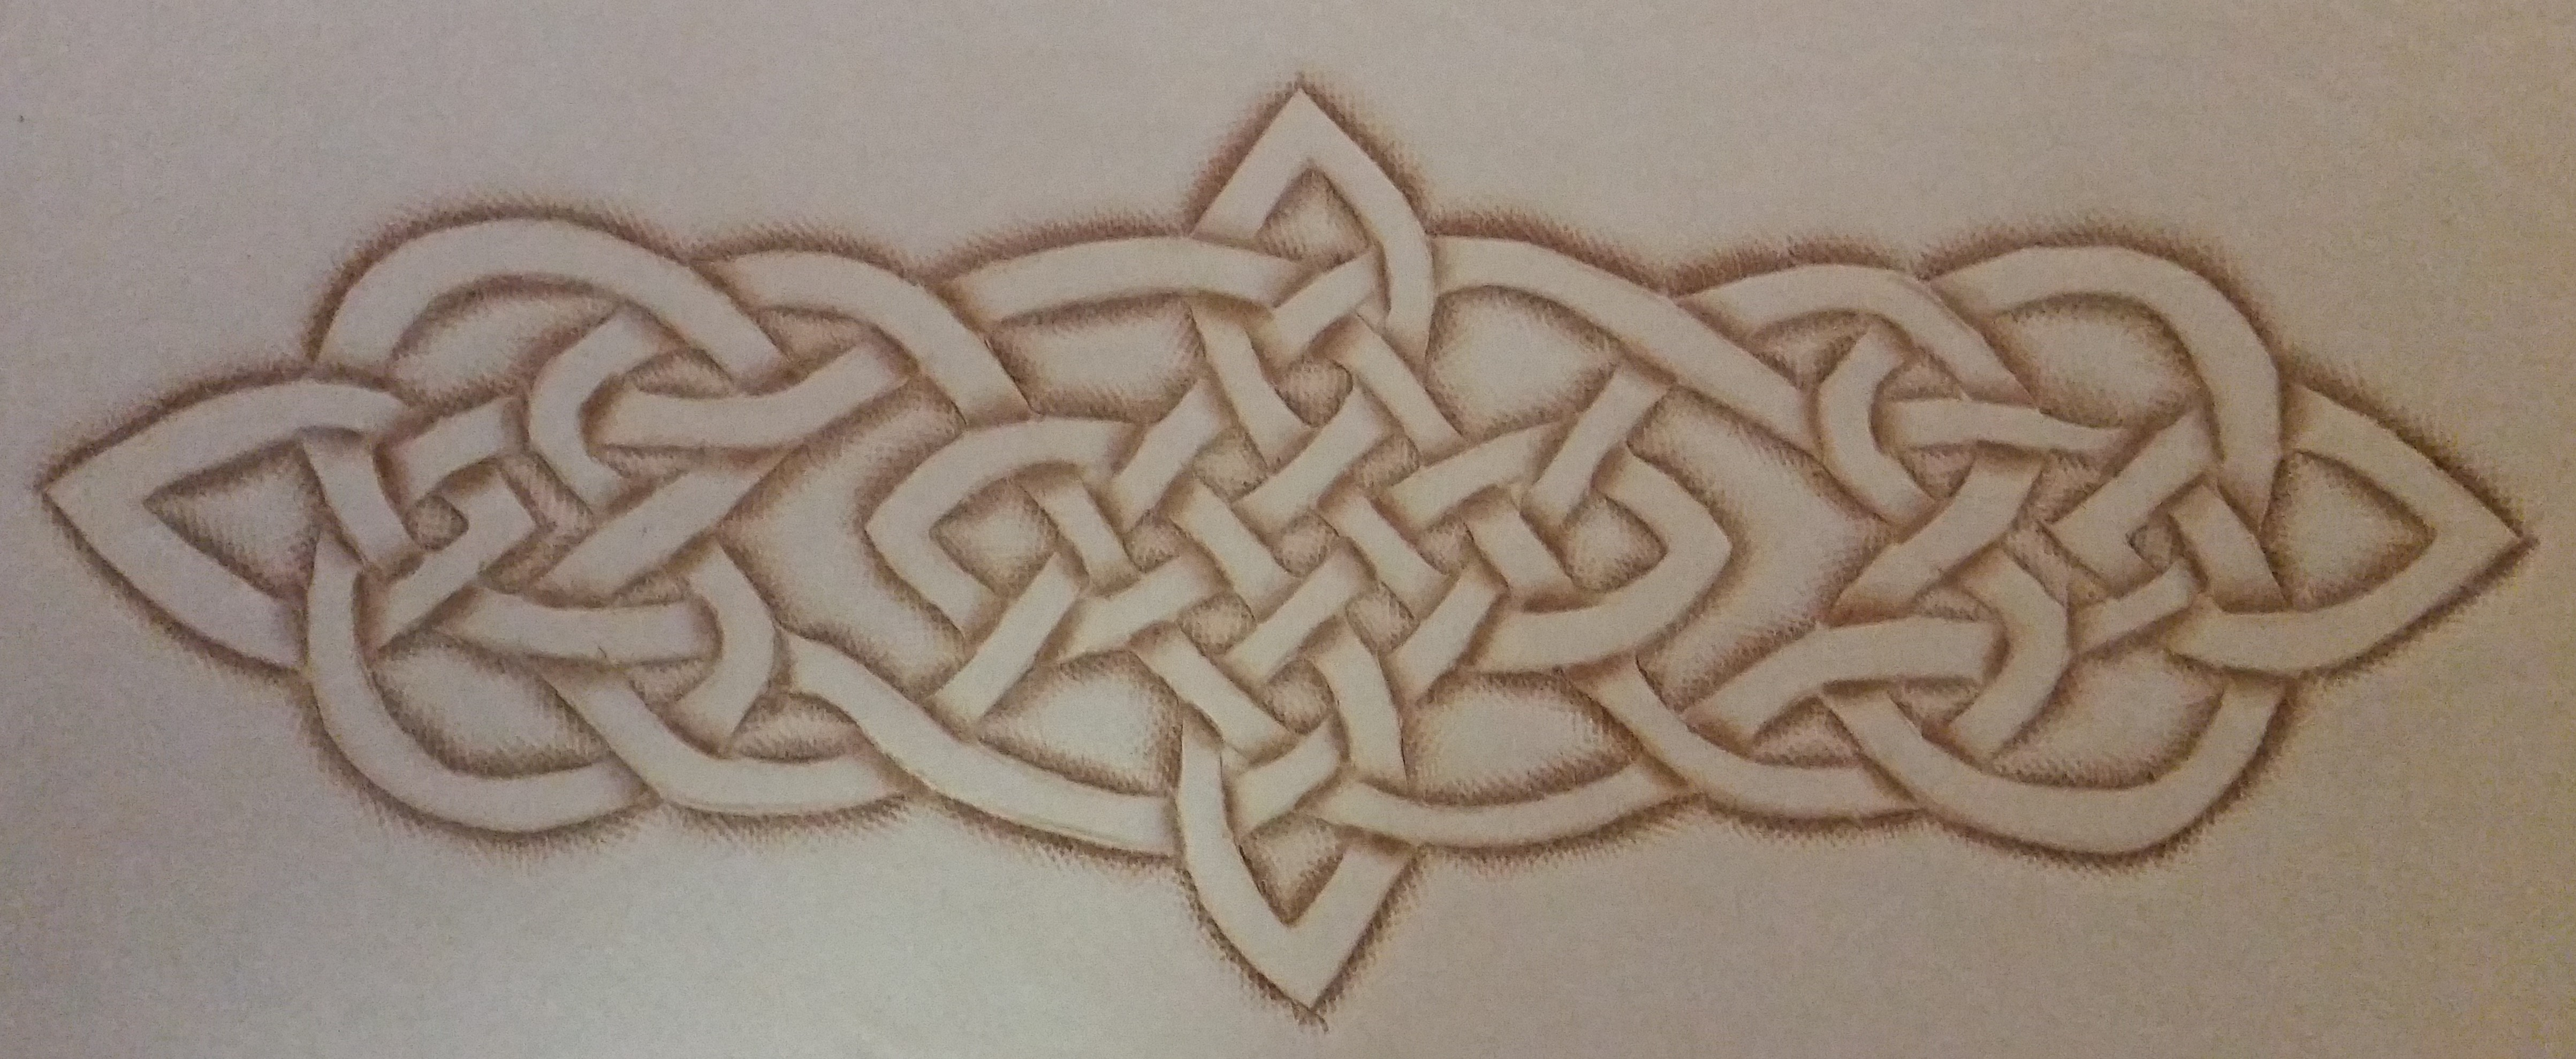 Celtic Leather Carving Patterns | www.galleryhip.com - The Hippest ...